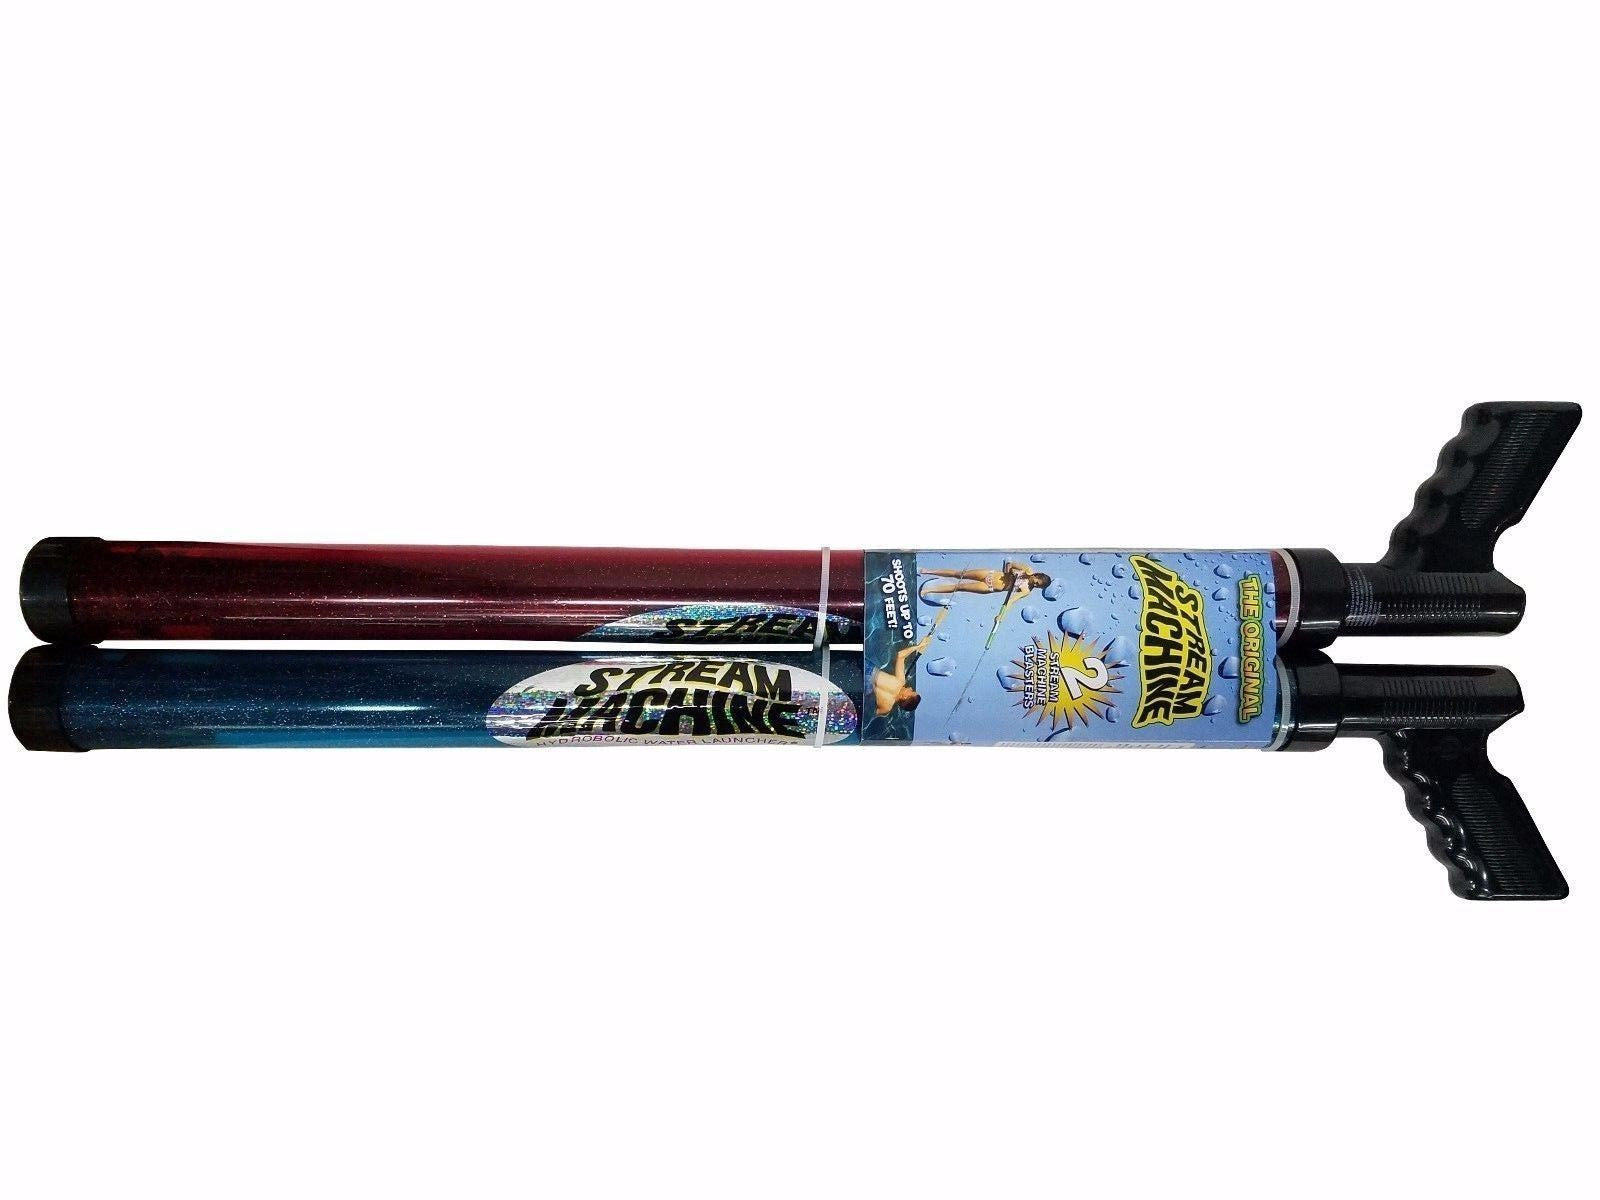 Stream Machine Water Blasters Shoots up to 70 Feet 2 Water Guns - Red & Blue